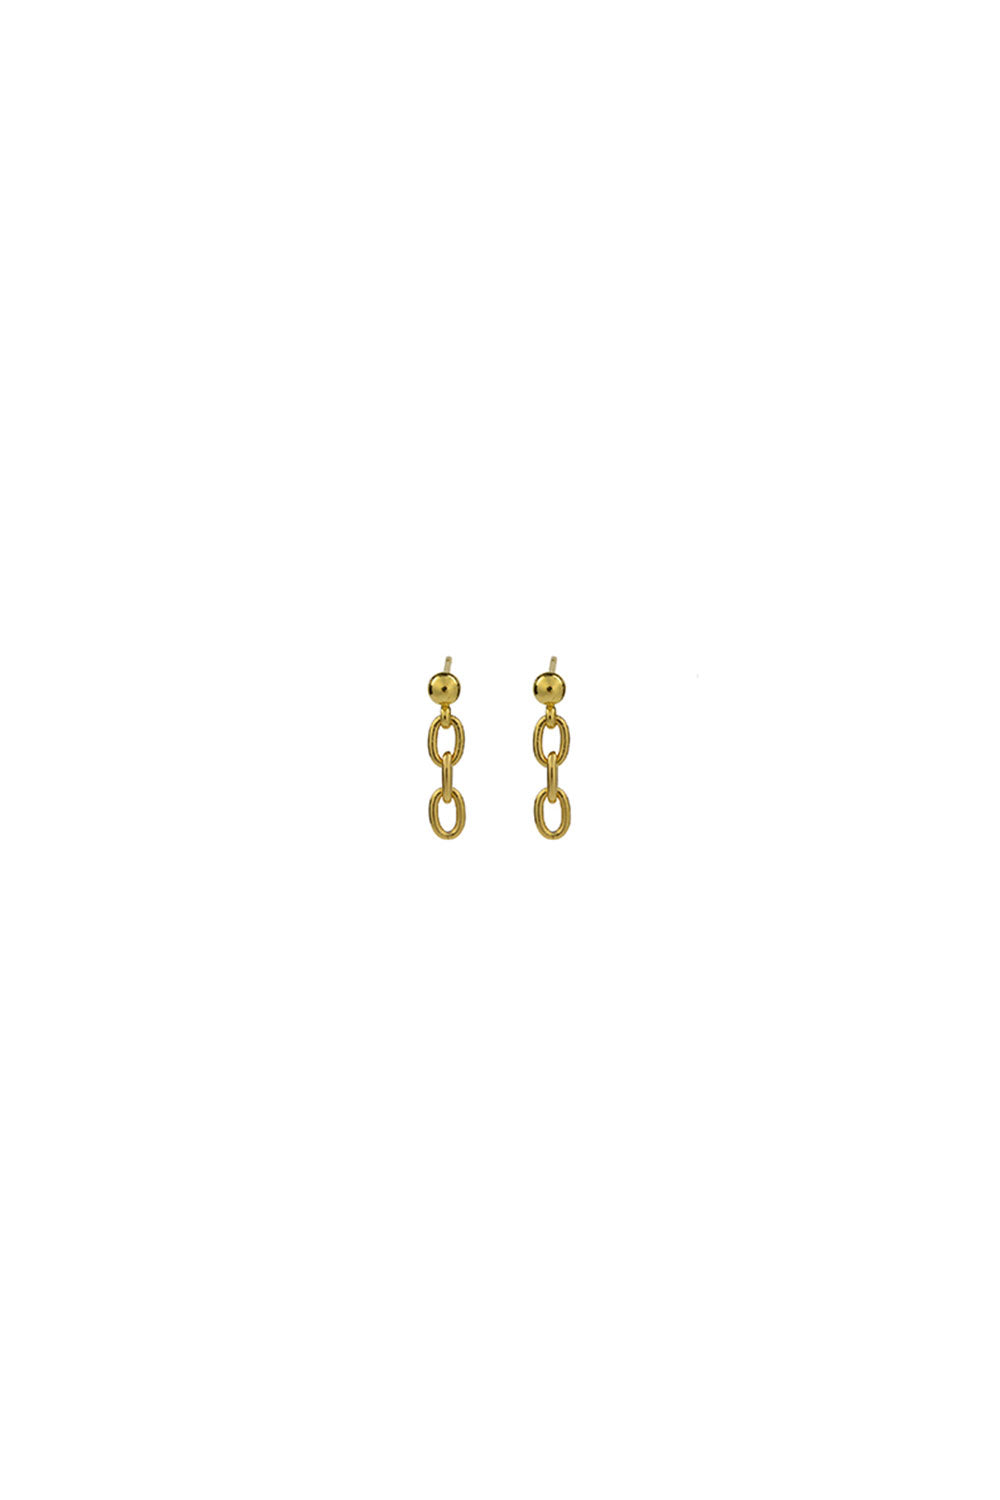 MINI CHAIN STUDS | GOLD